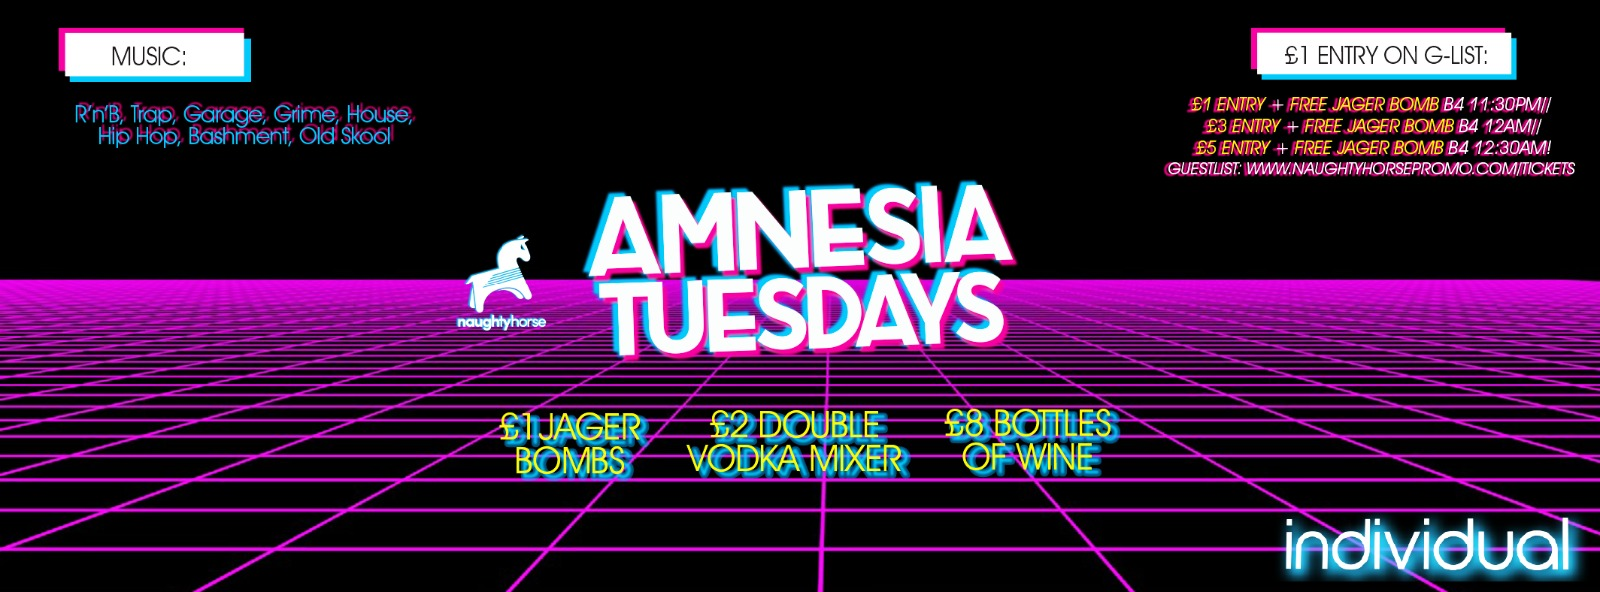 AMNESIA TUESDAYS at Indi (Arcadian) – £1 Entry + FREE JAGERBOMB guestlist!